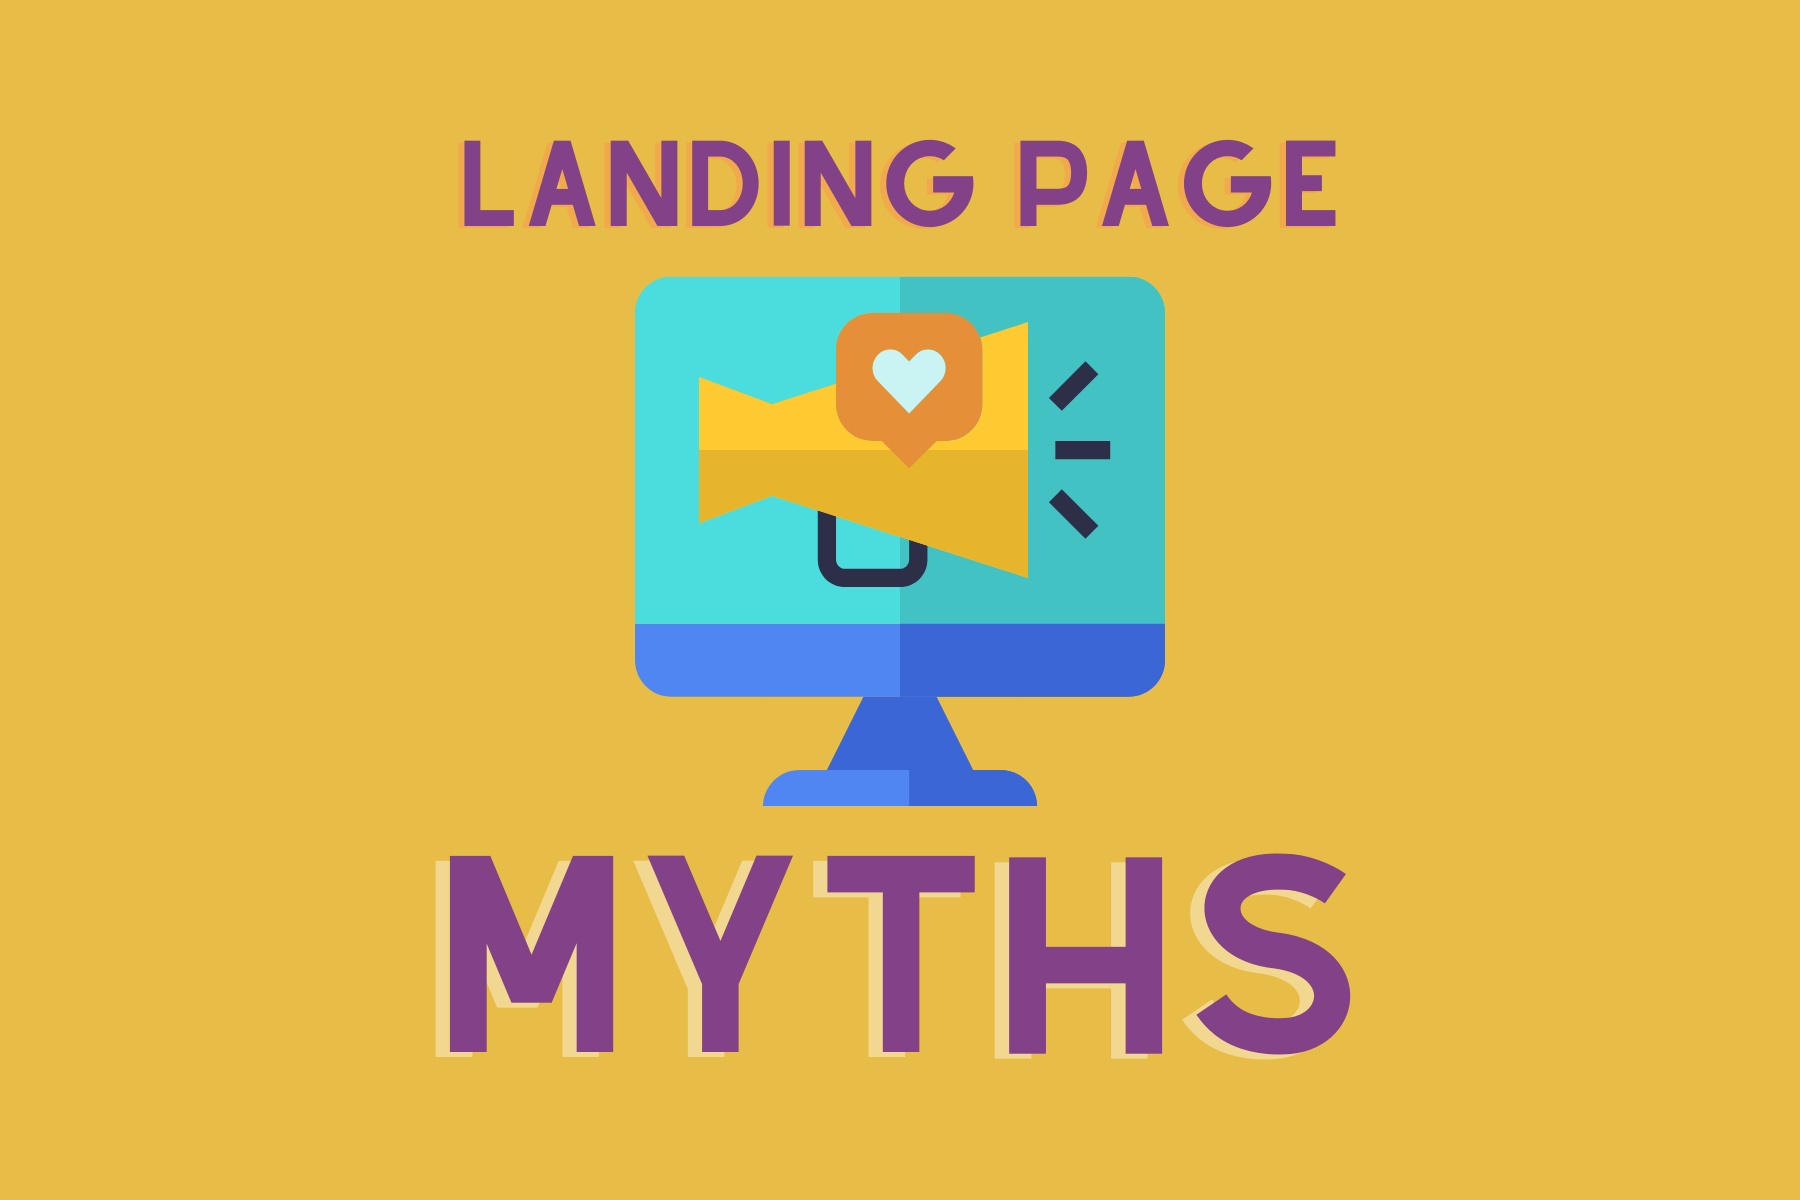 landing page myths in education